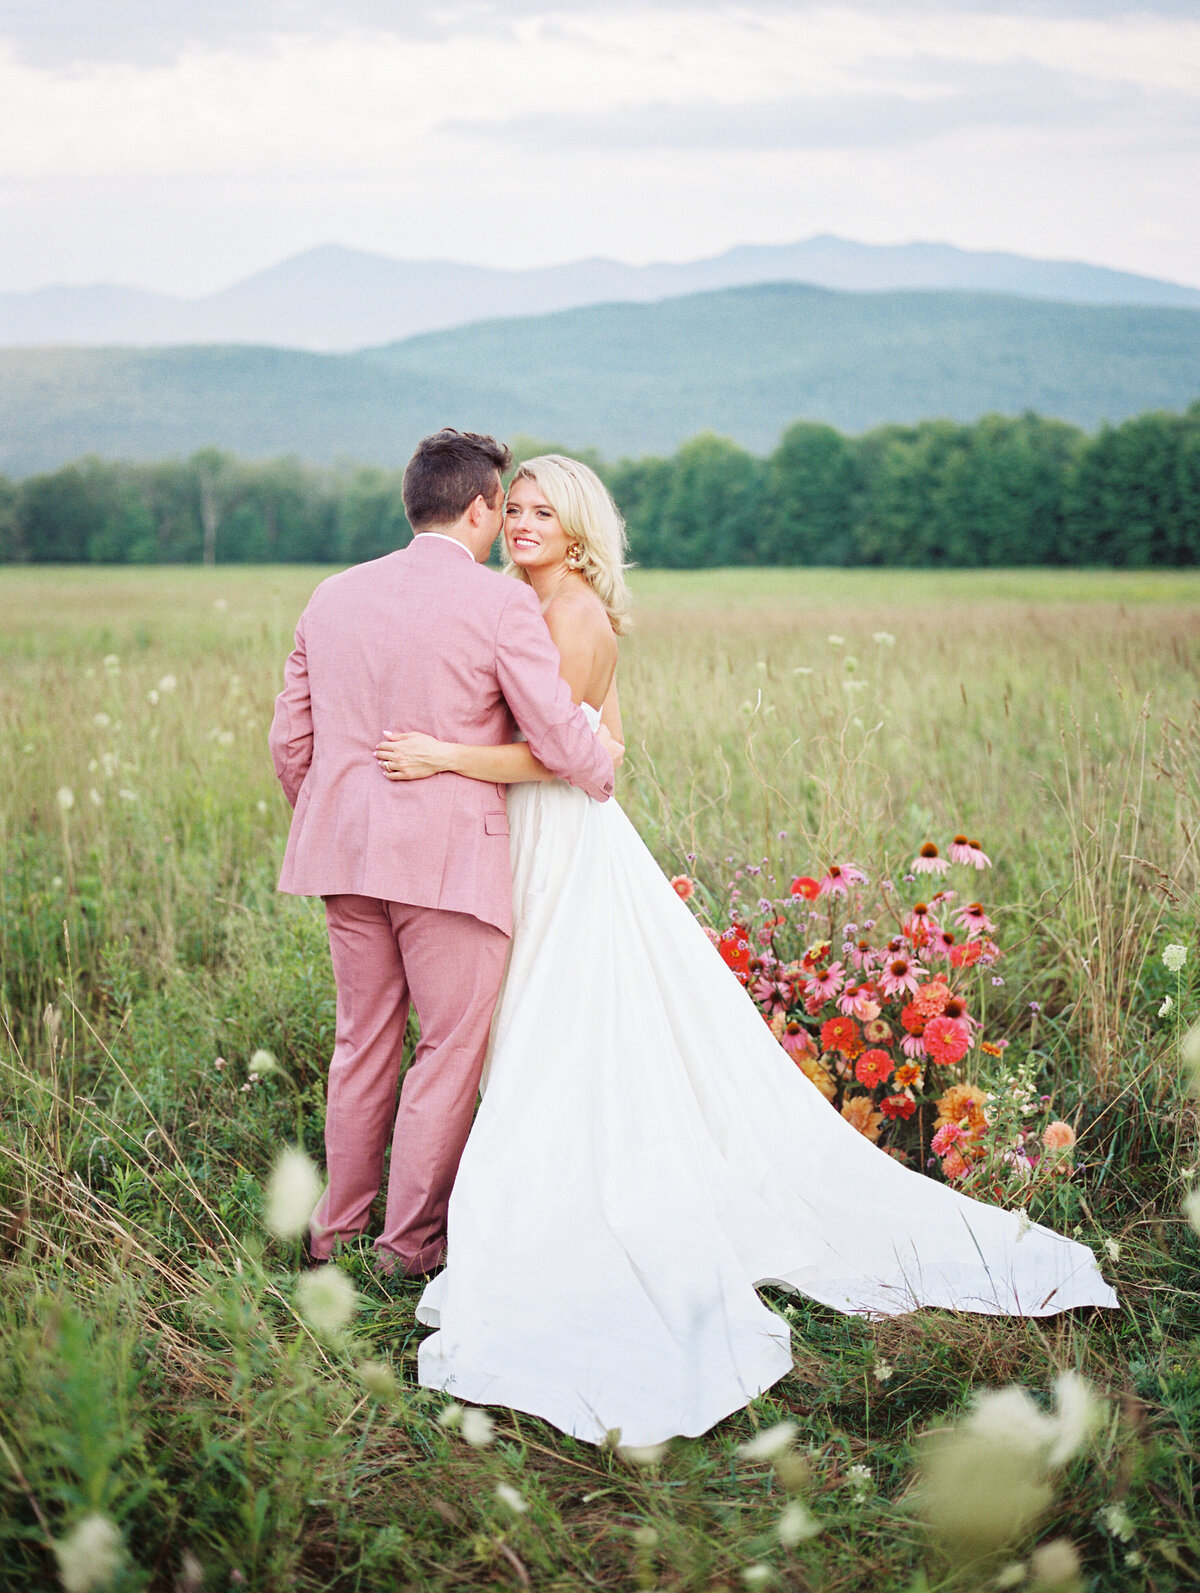 adirondack-wedding-photographer-adk-photos-54